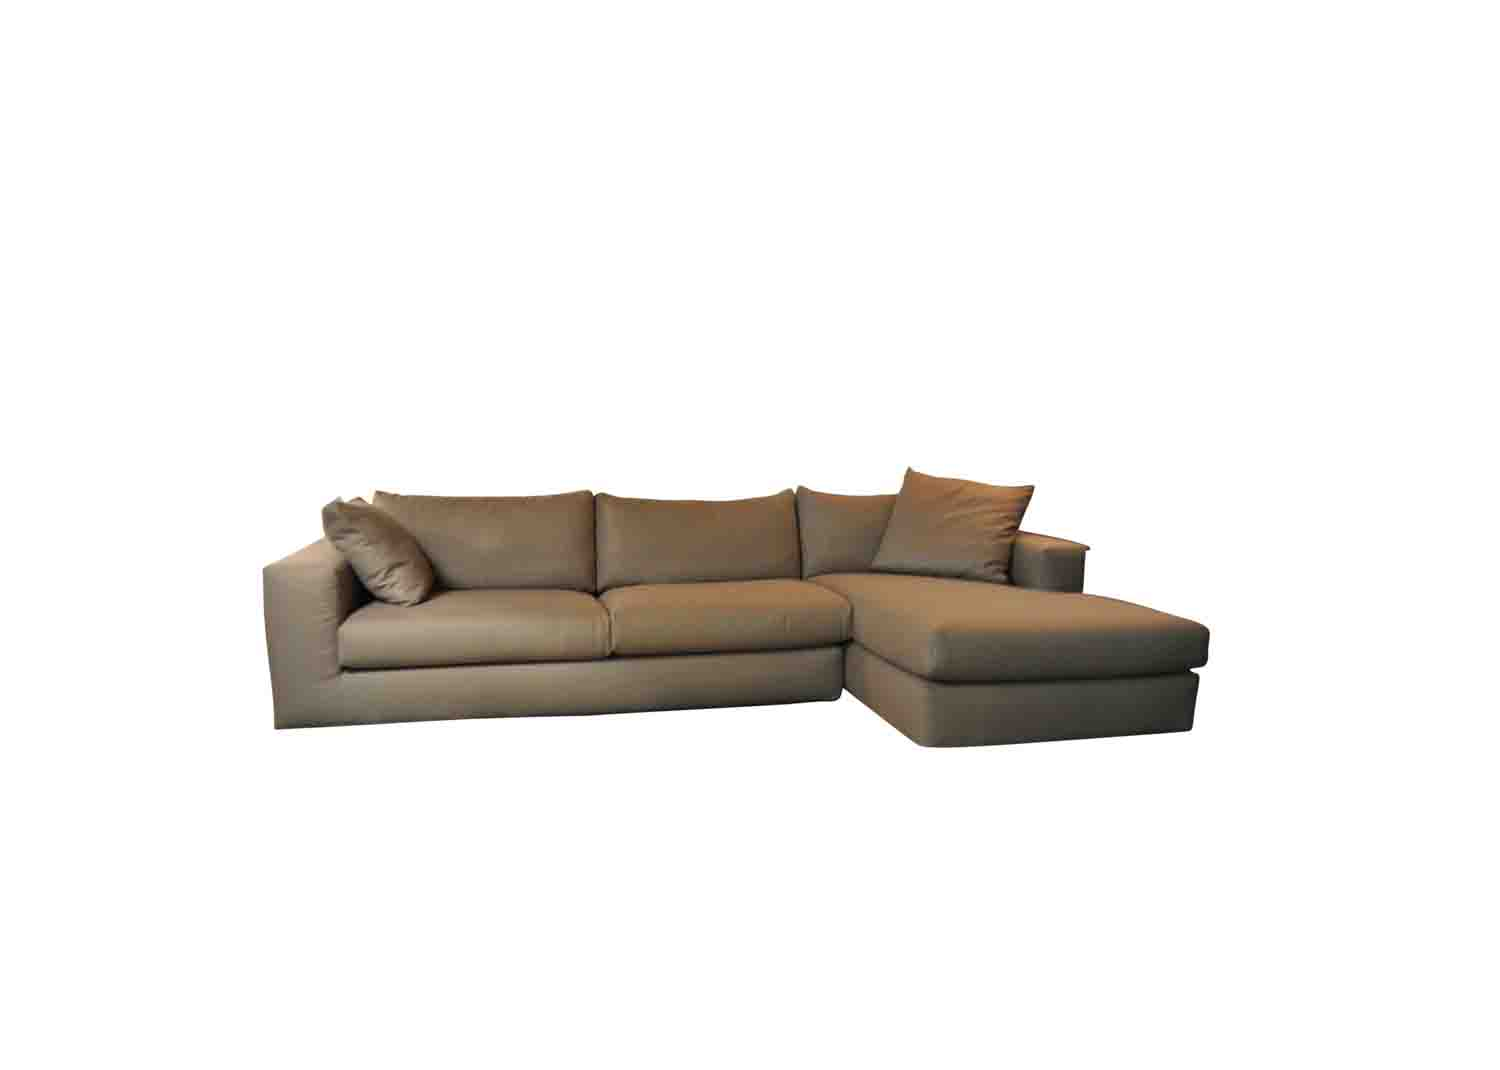 Bank Met Chaise Longue Links Linteloo Hoekbank Best Srvallen Hoekbank Met Chaise